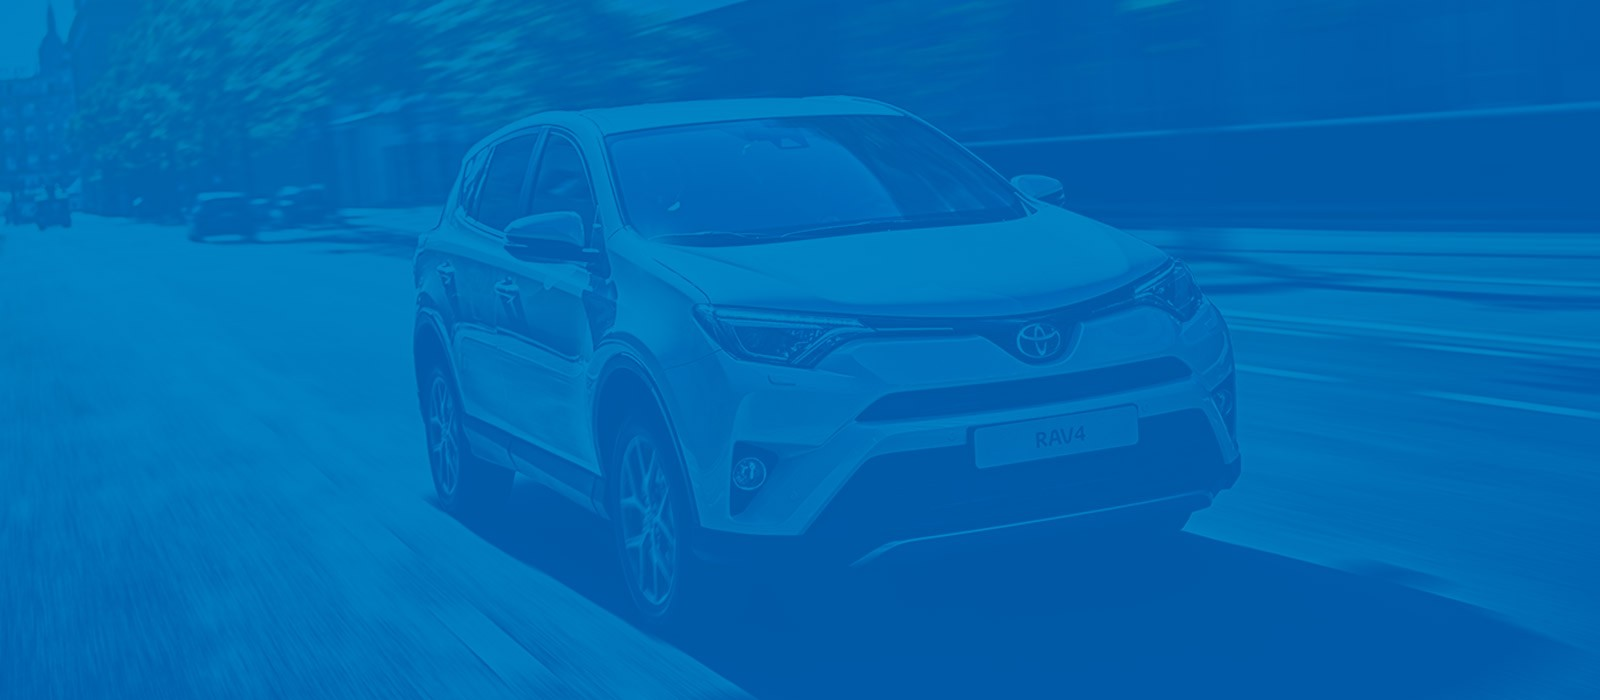 Toyota Safety Sense - RAV4